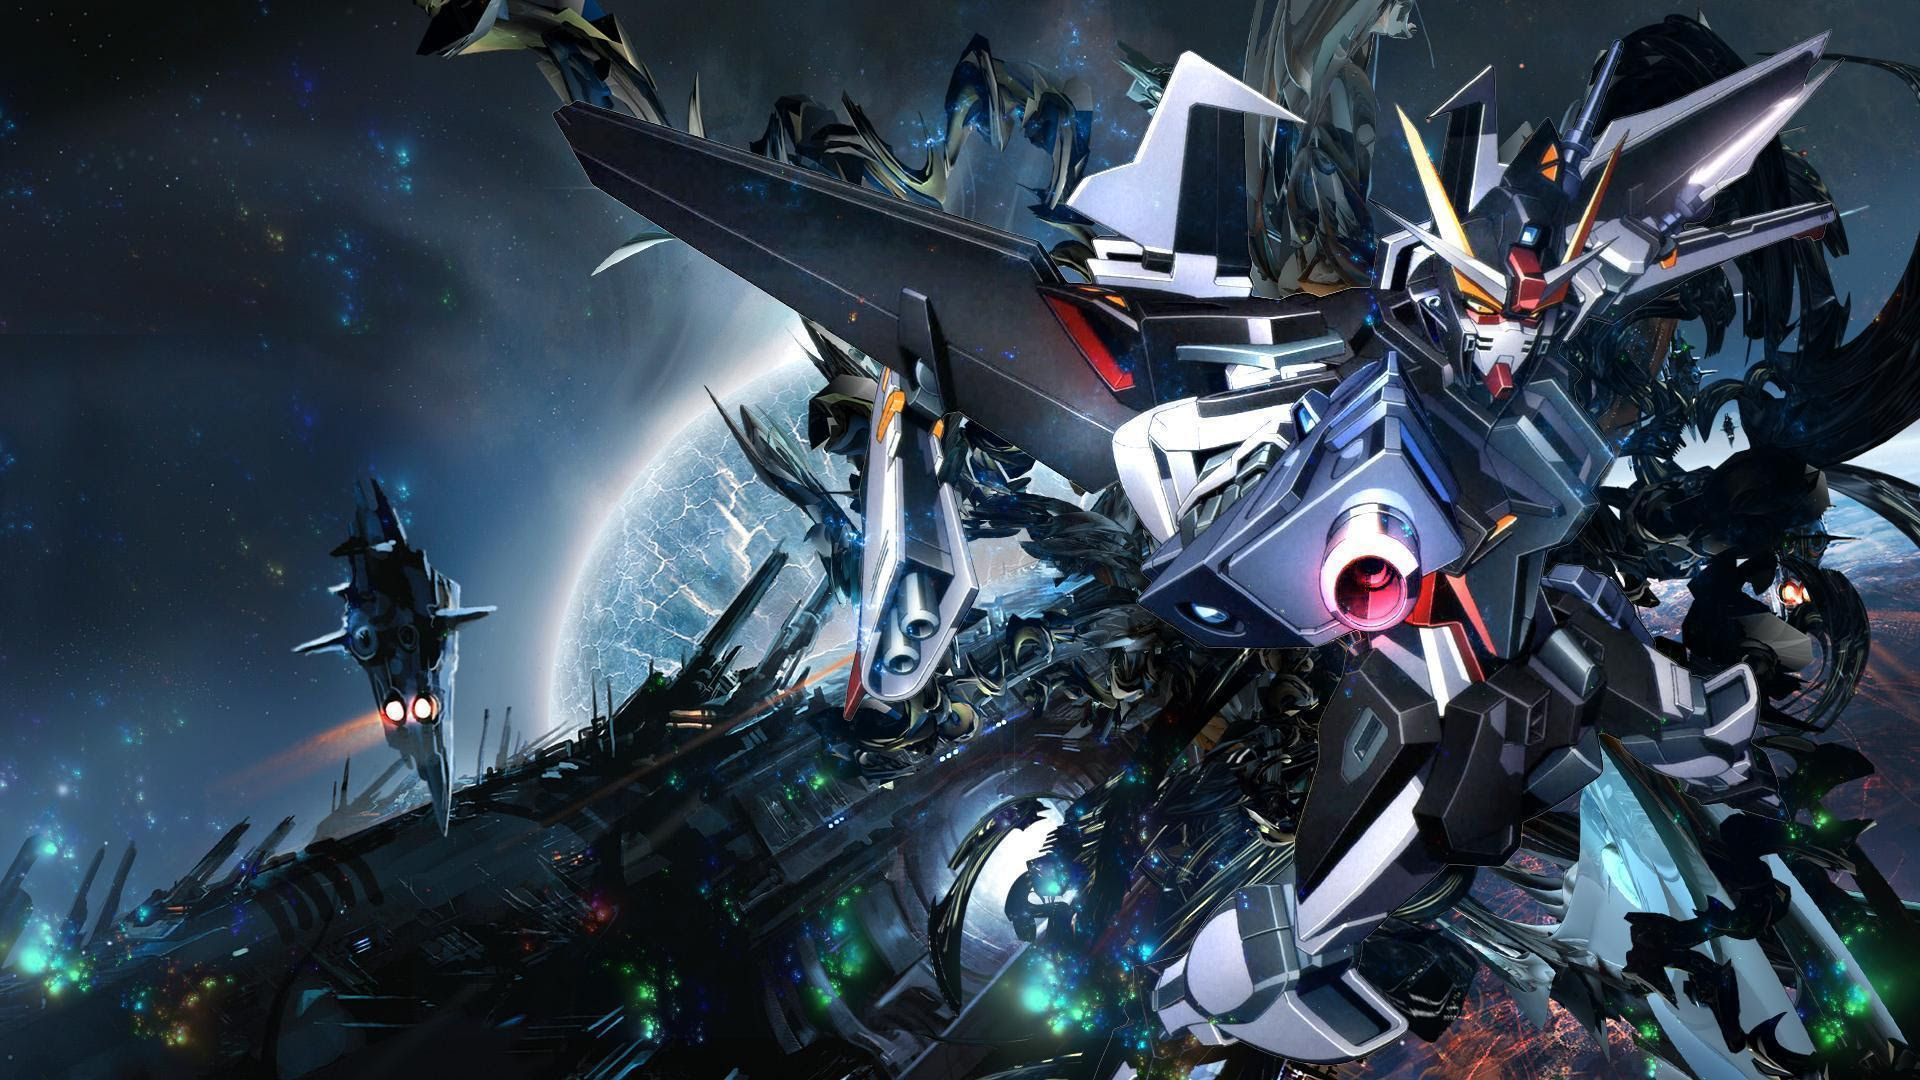 Gundam - Anime Wallpapers HD 4K Download For Mobile iPhone ...